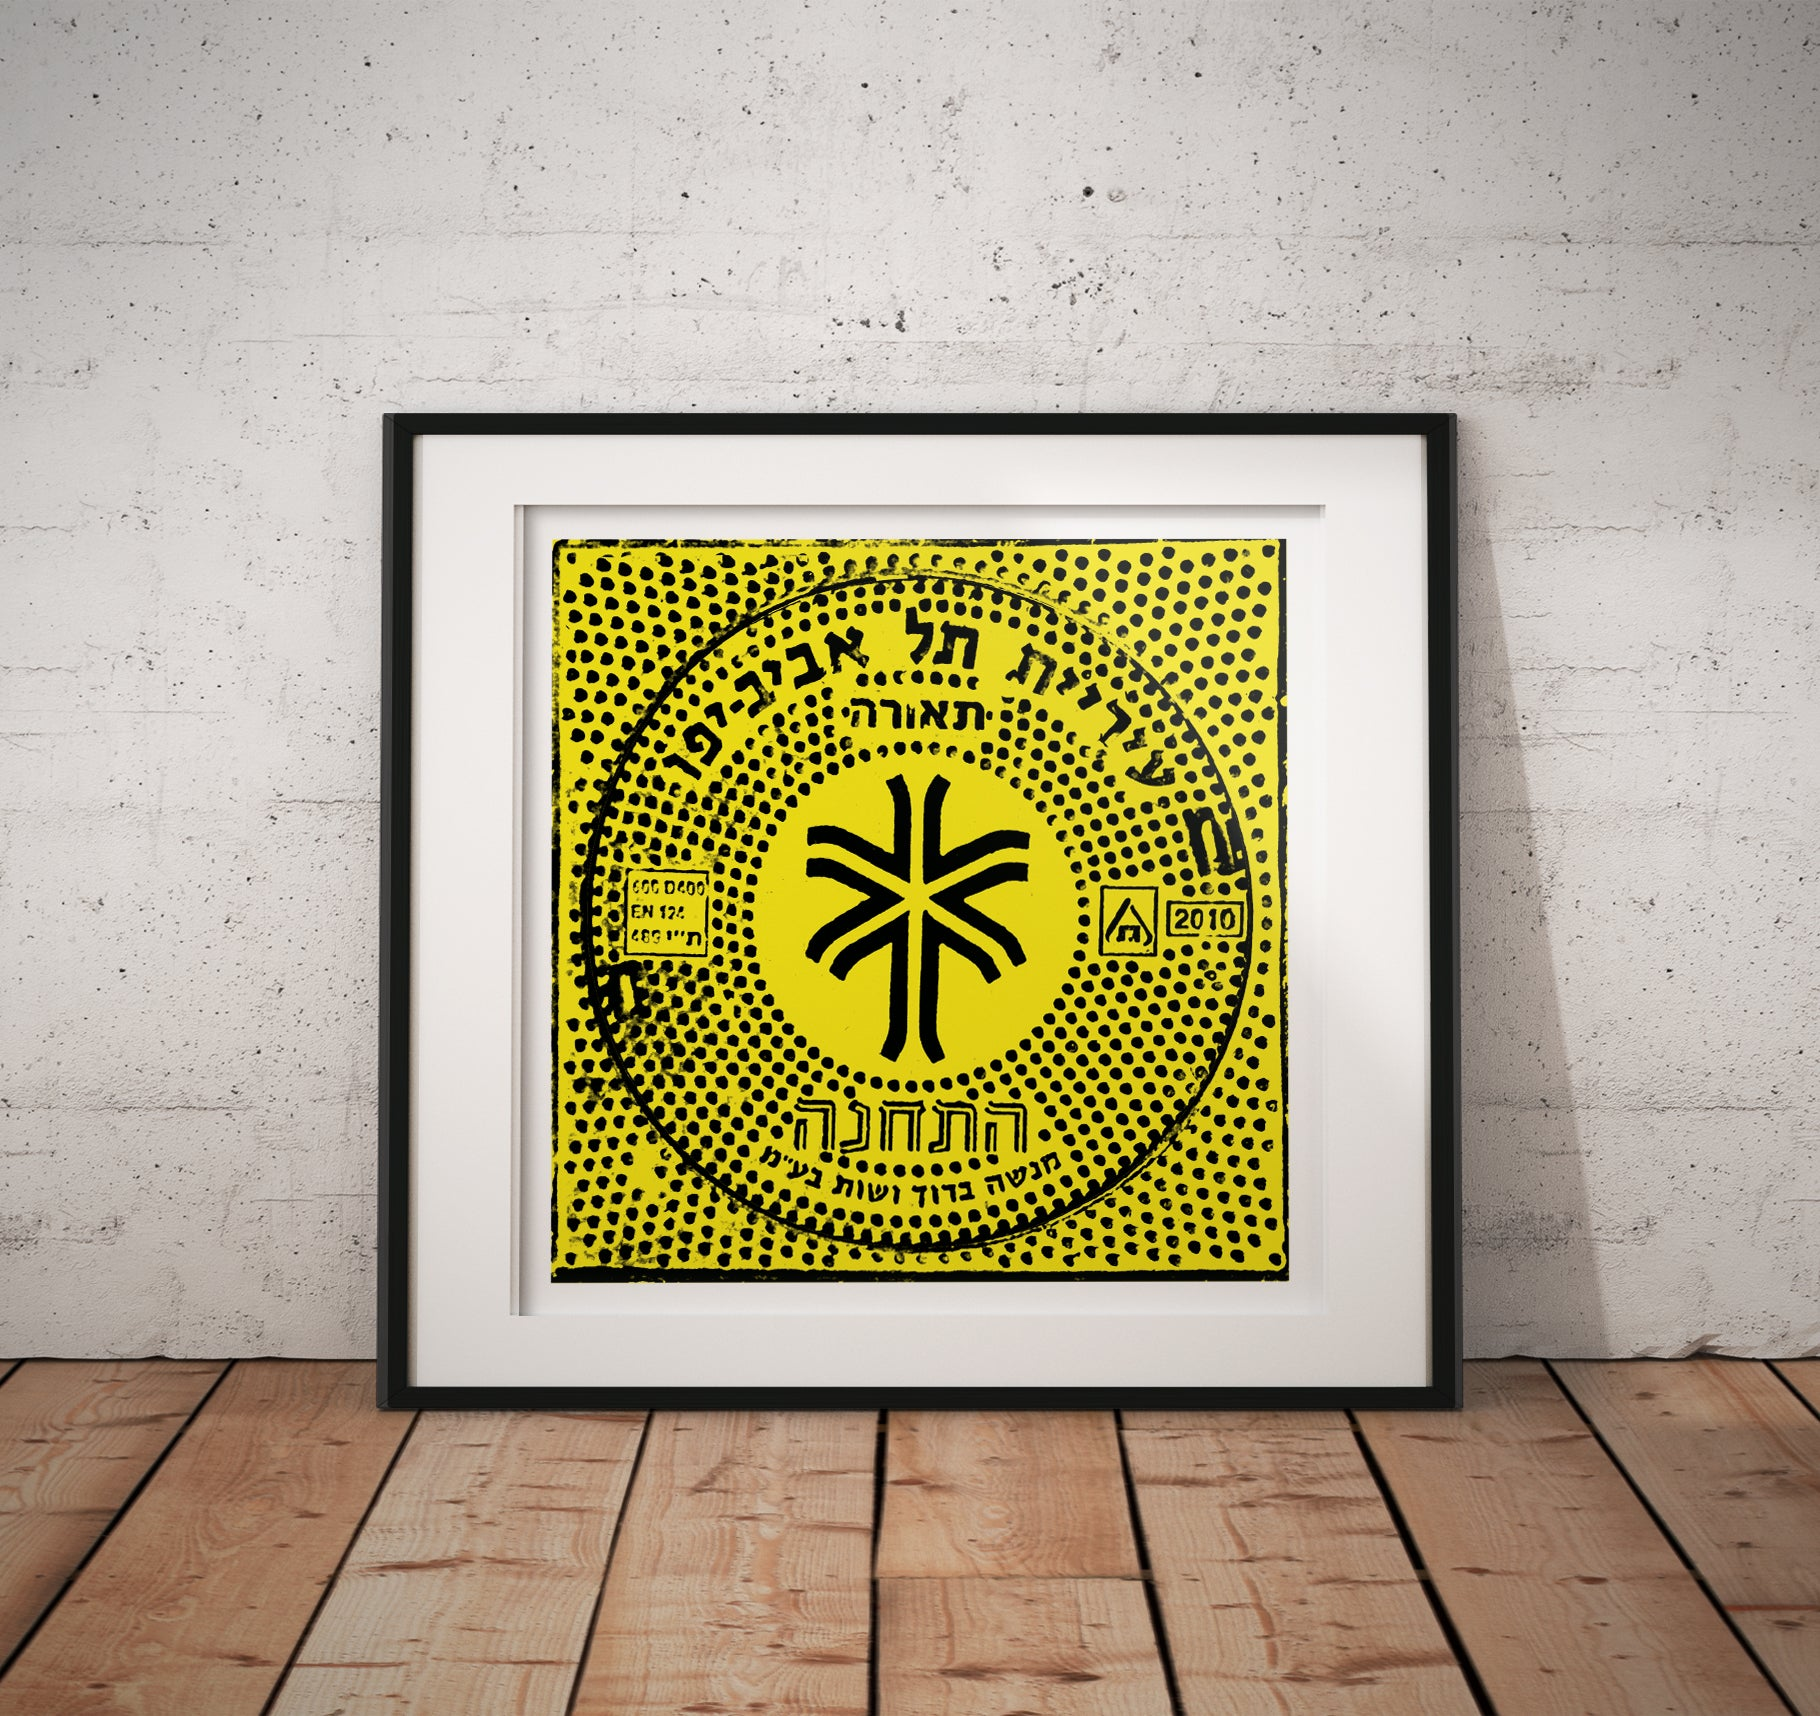 Tel Aviv - \'Ha Tahana\' Sewer Cover Pop art israeli artists poster ...